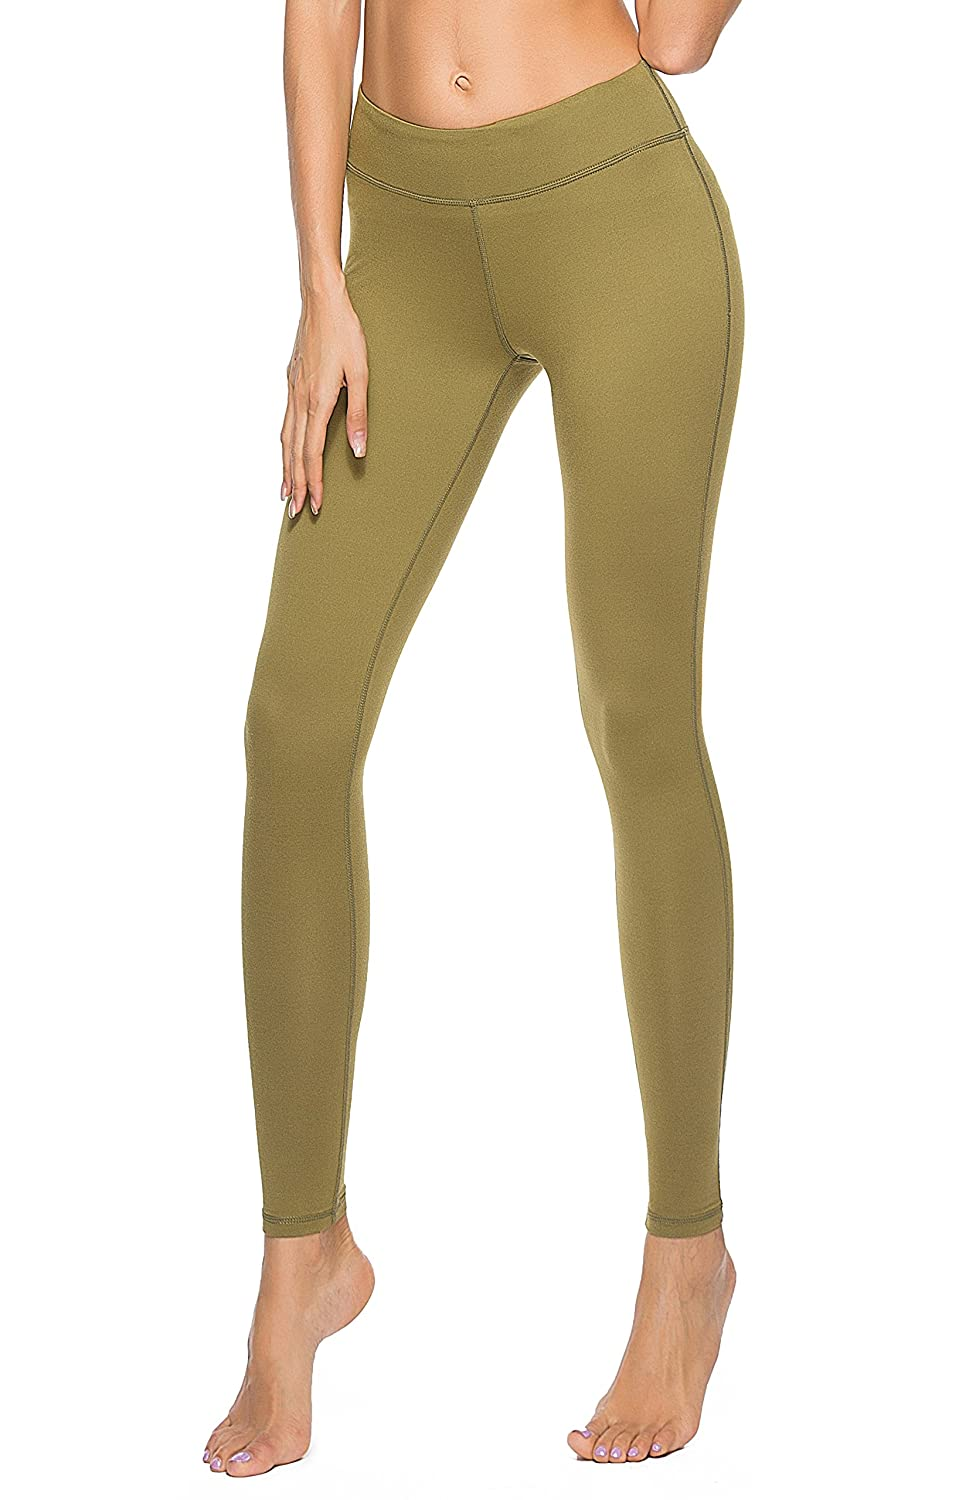 be19b0ec6f4b5b ☆The WORKOUT LEGGINGS are made out of a soft, solid, stretchy material that  wicks all the sweat away. Comprised of 88% Polyester and 12% Spandex, ...